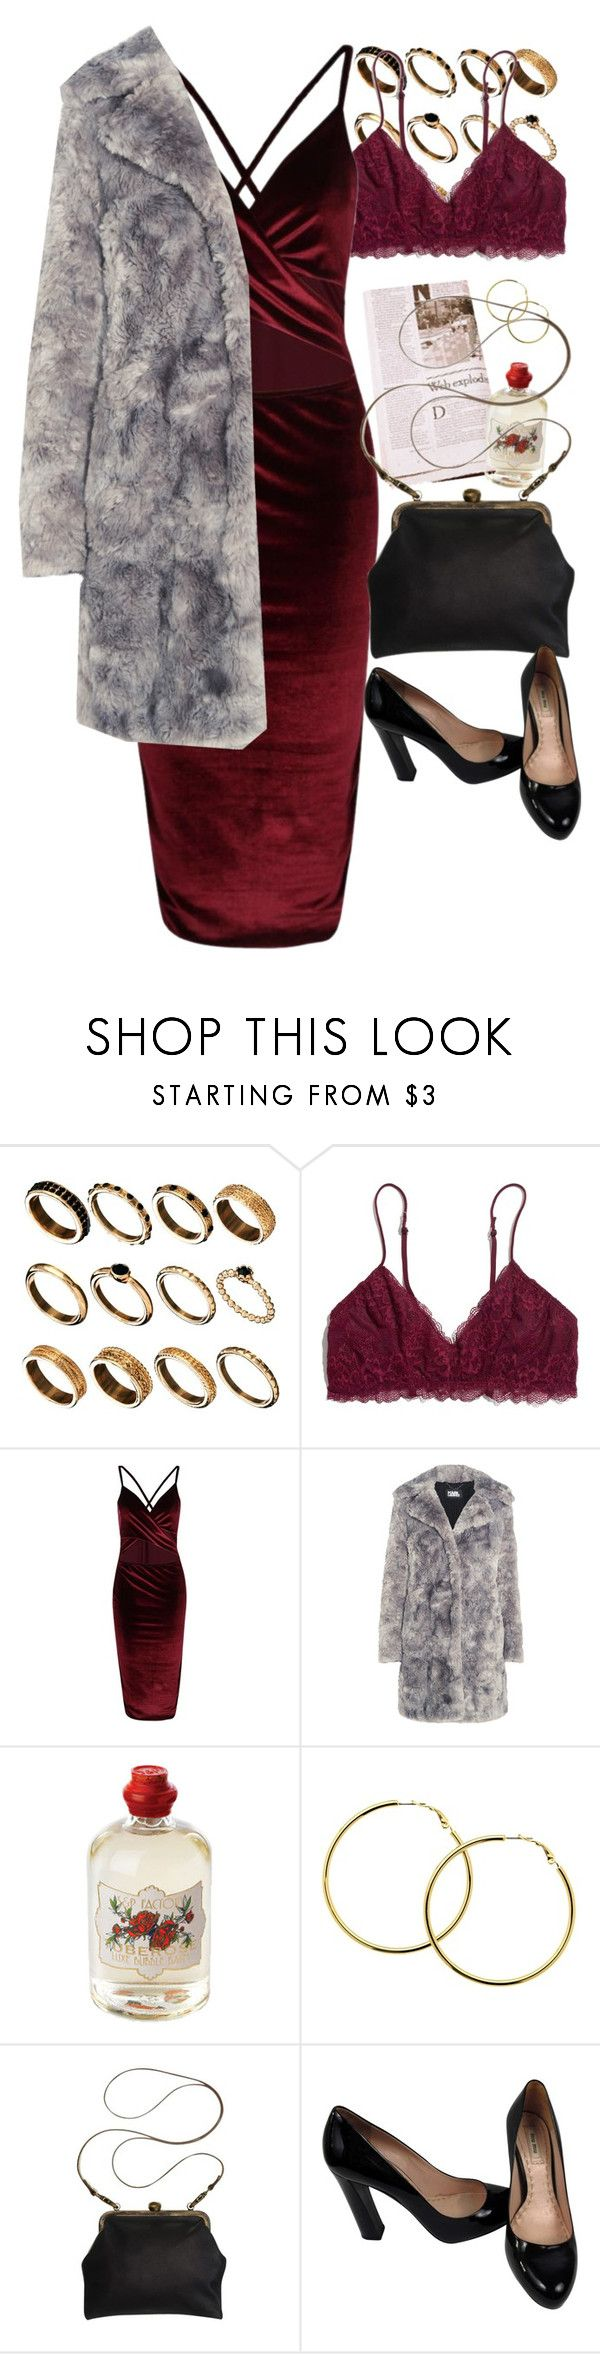 """""""Burgundy, Grey and Black"""" by aurorajeanette ❤ liked on Polyvore featuring ASOS, Madewell, Karl Lagerfeld, Soap & Paper Factory, Melissa Odabash, Mimi Berry and Miu Miu"""